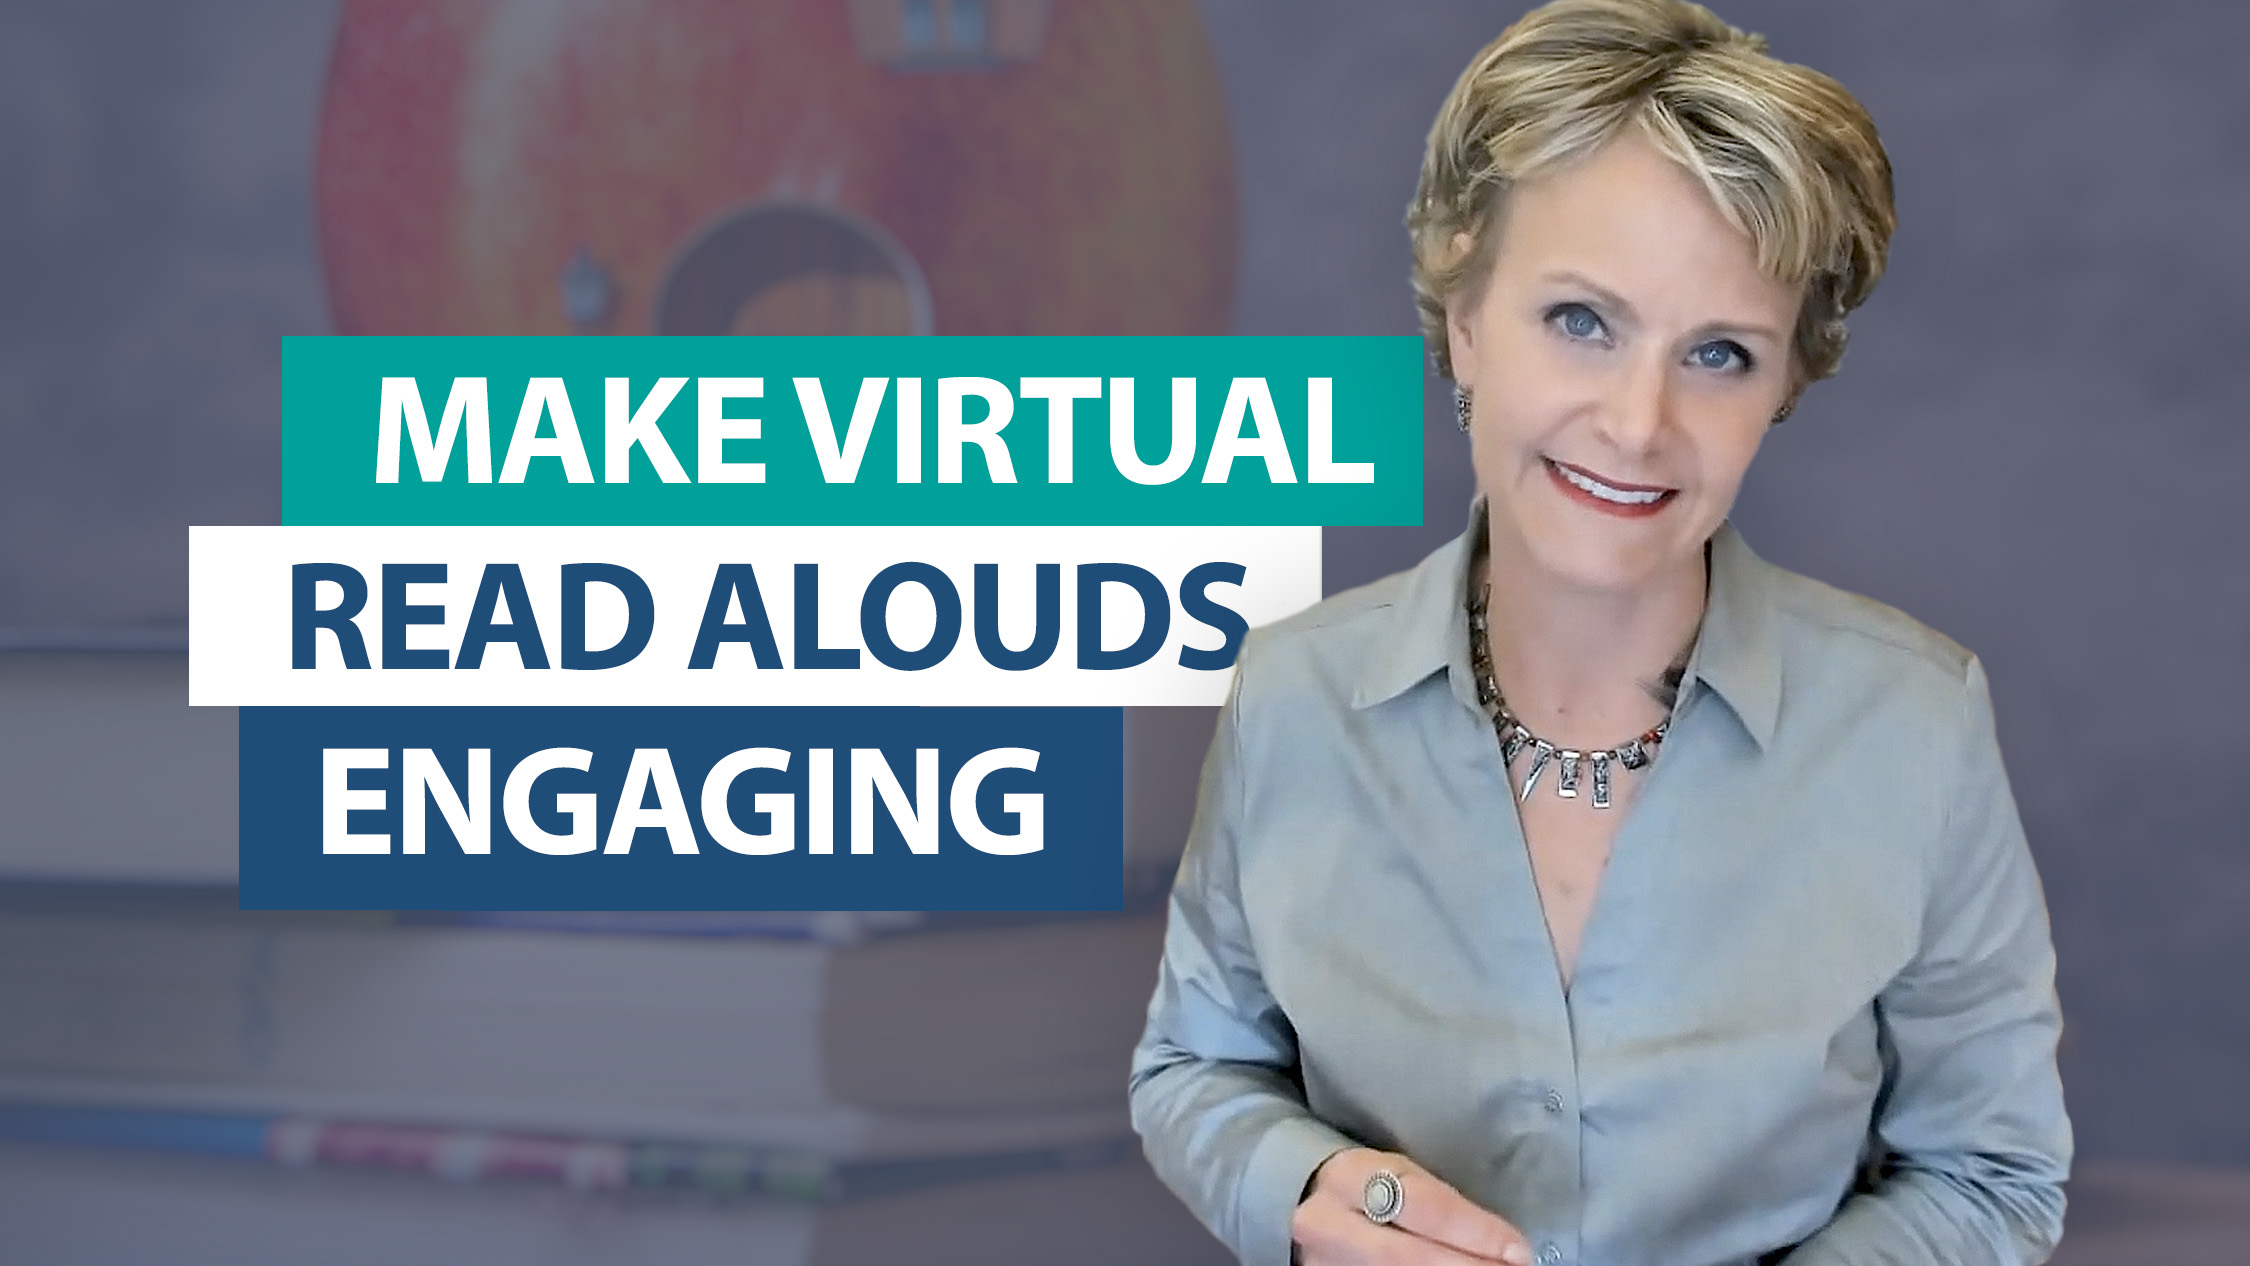 How do you engage students with a virtual read aloud?